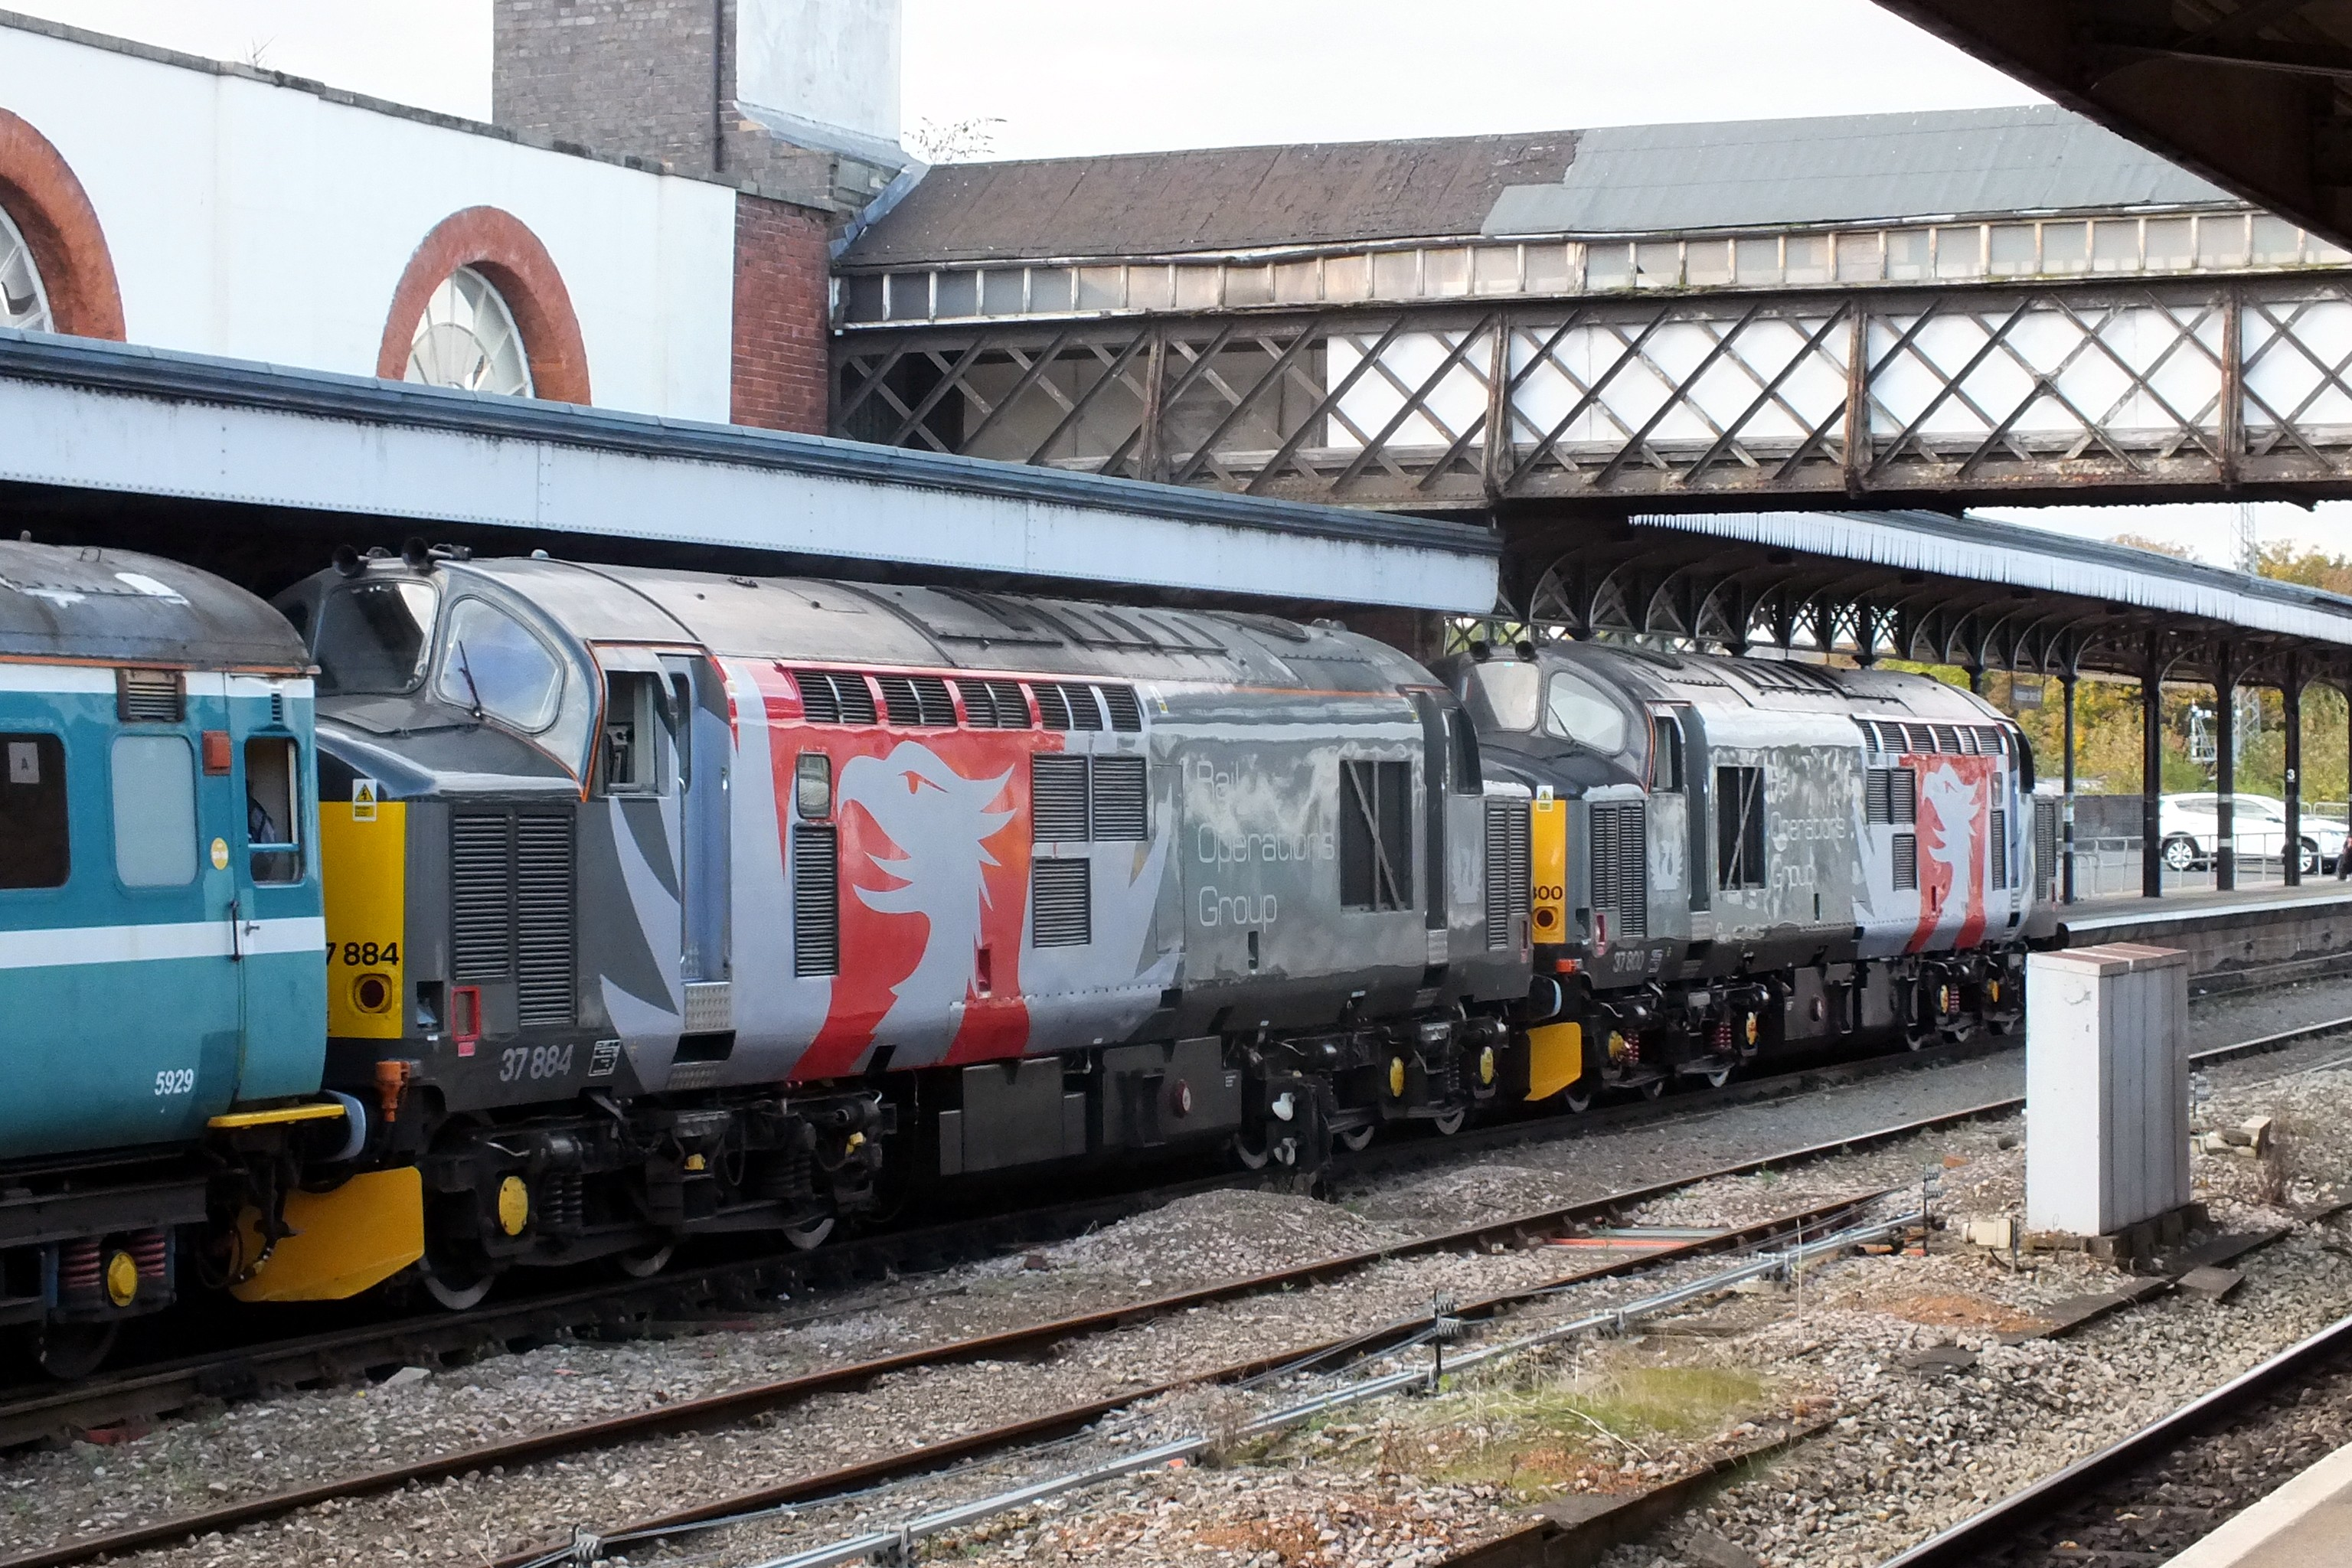 23 October 2016 Shrub Hill 005.jpg